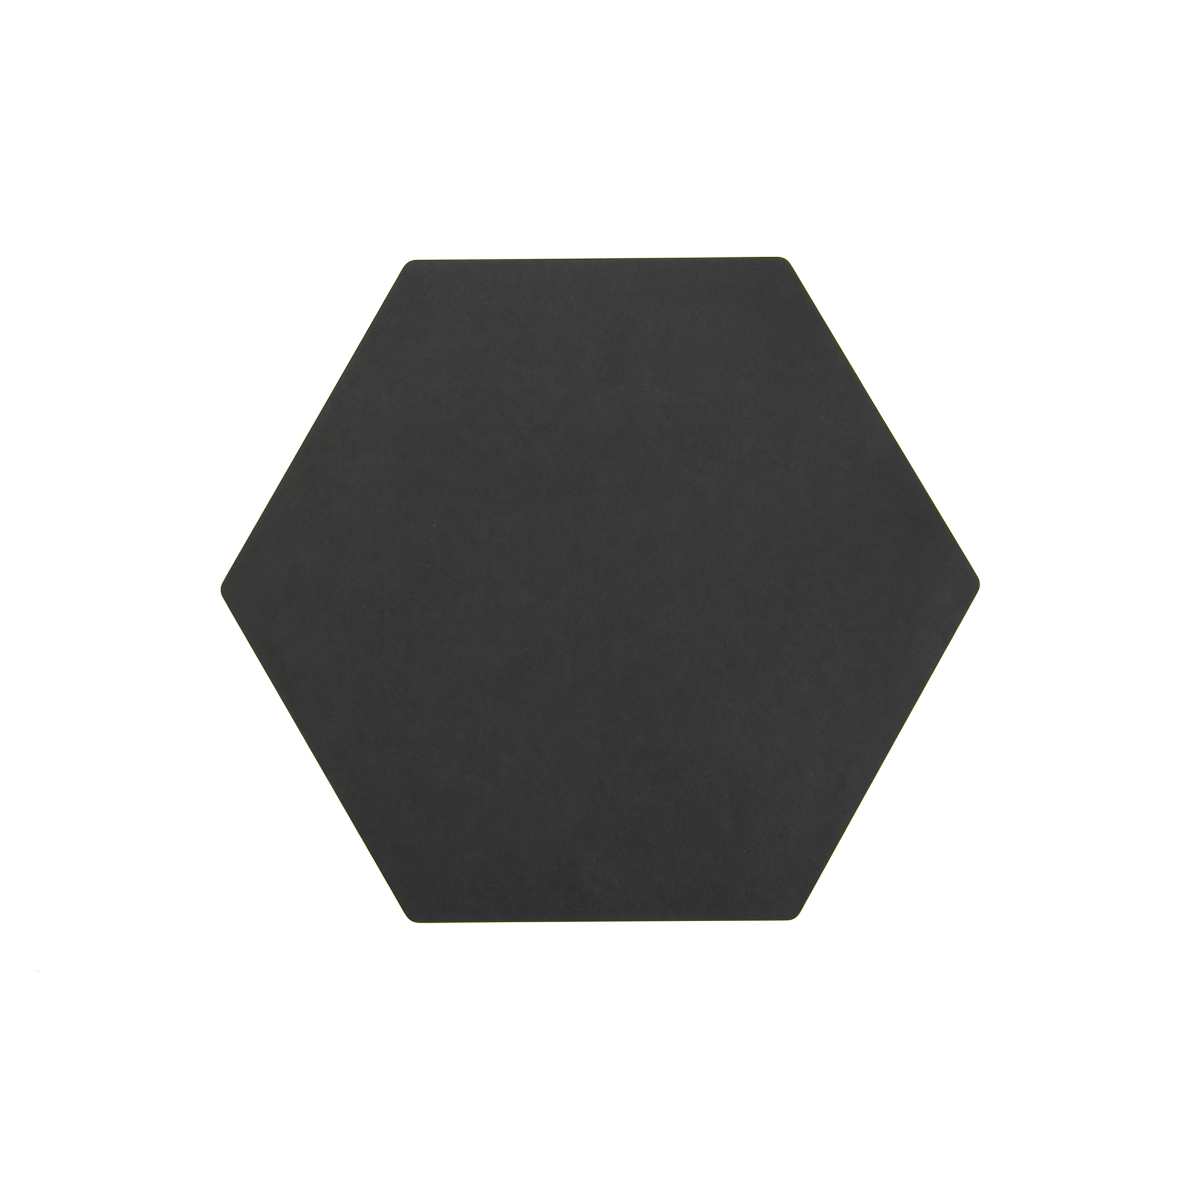 Epicurean Hexagon Series Slate 13 Inch Display Board